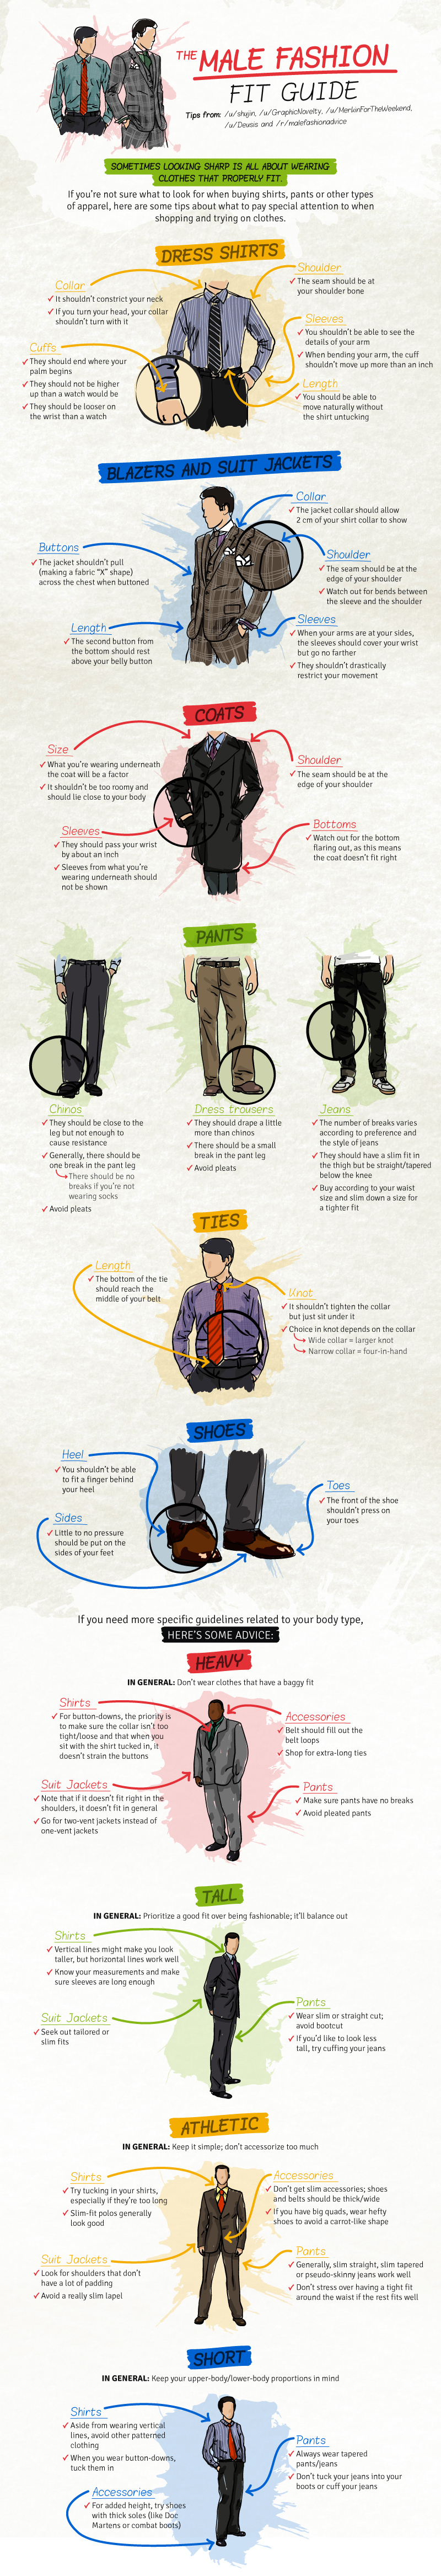 Man's Fashion Guide To Dressing Properly